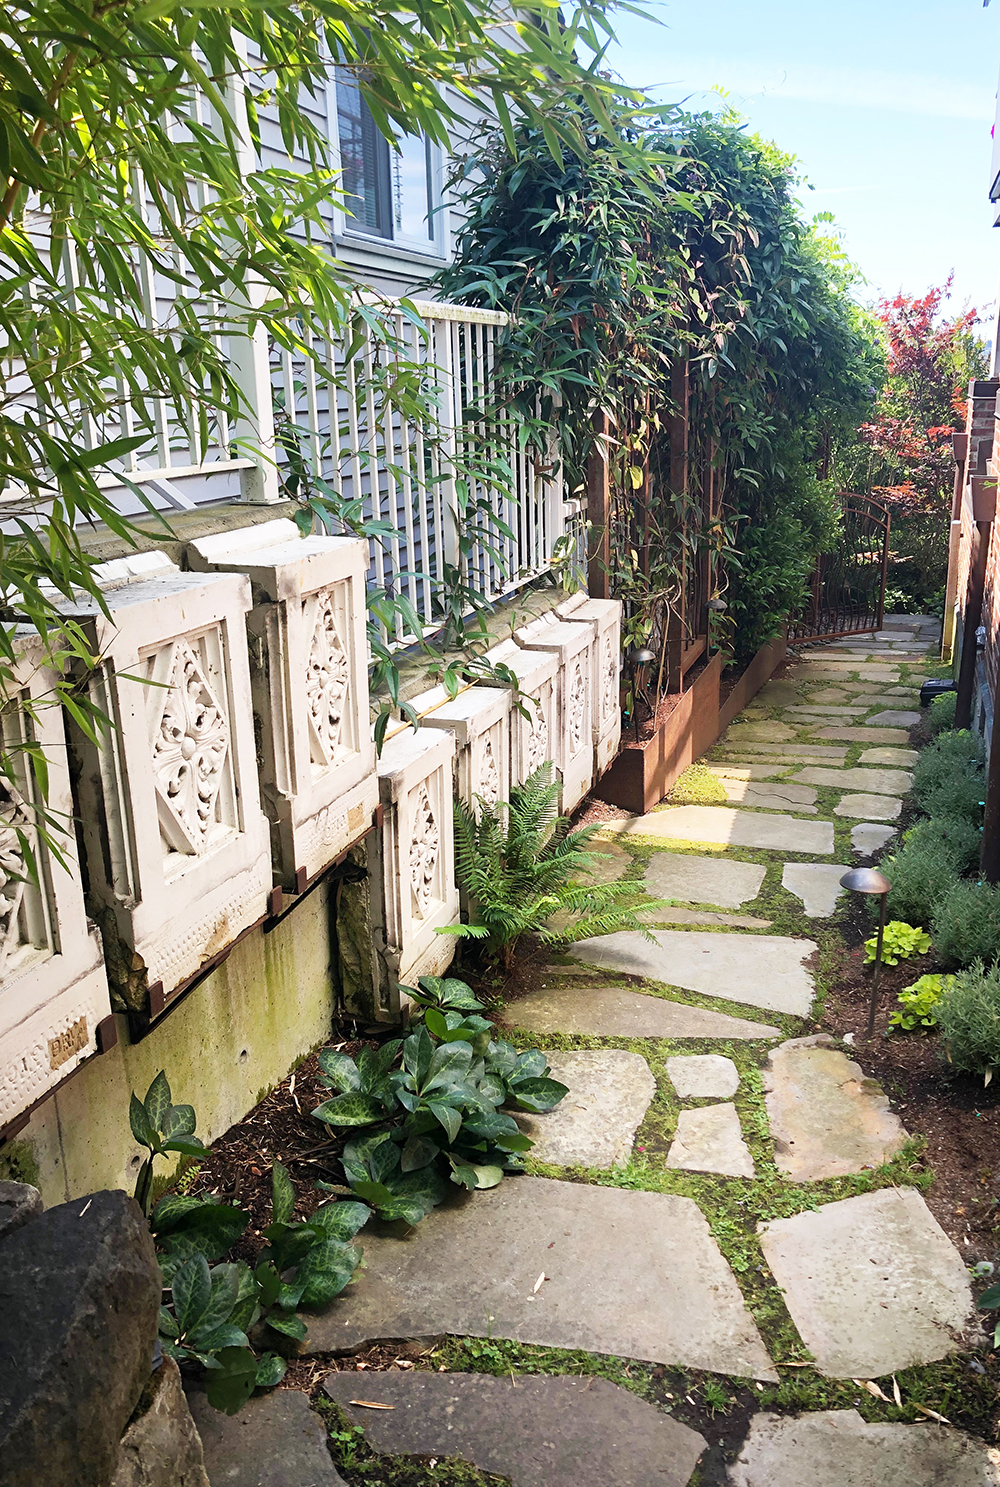 This Seattle garden tucked in some architectural artifacts to add charm to this narrow space